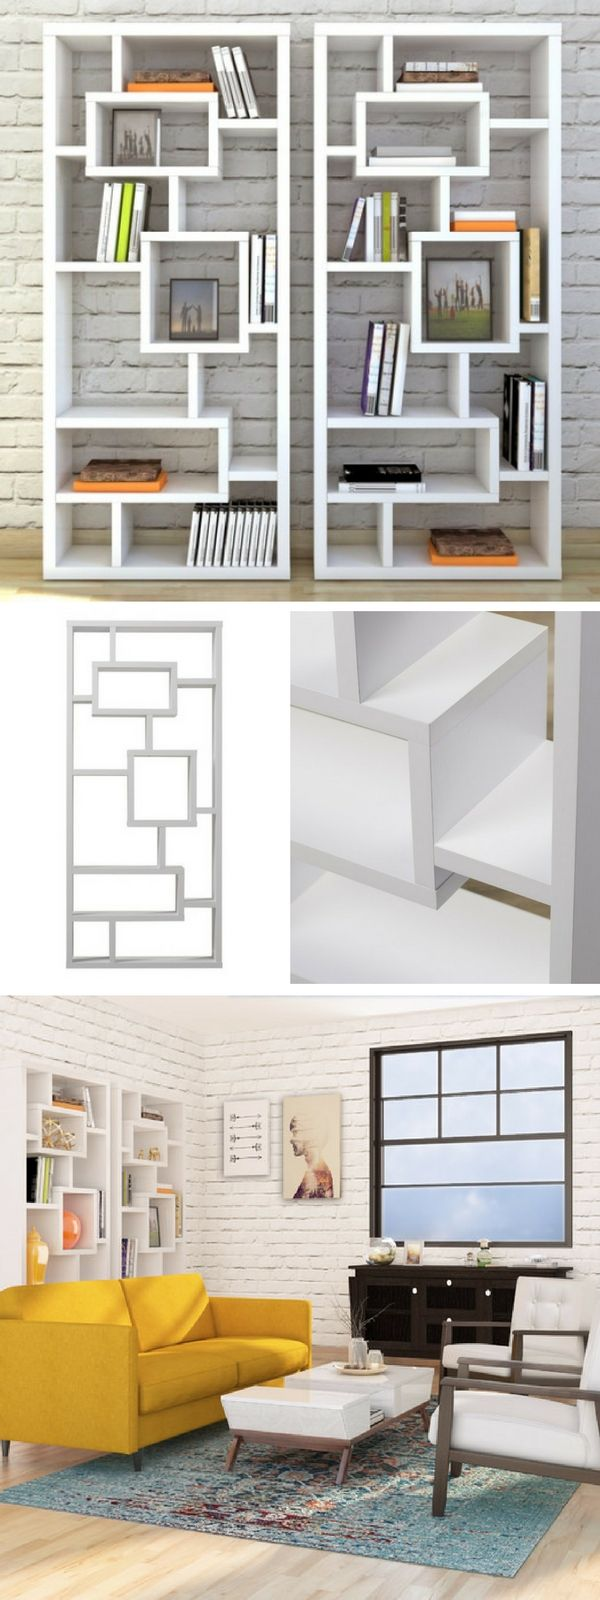 Top best bookshelves for small spaces unique check and shelves